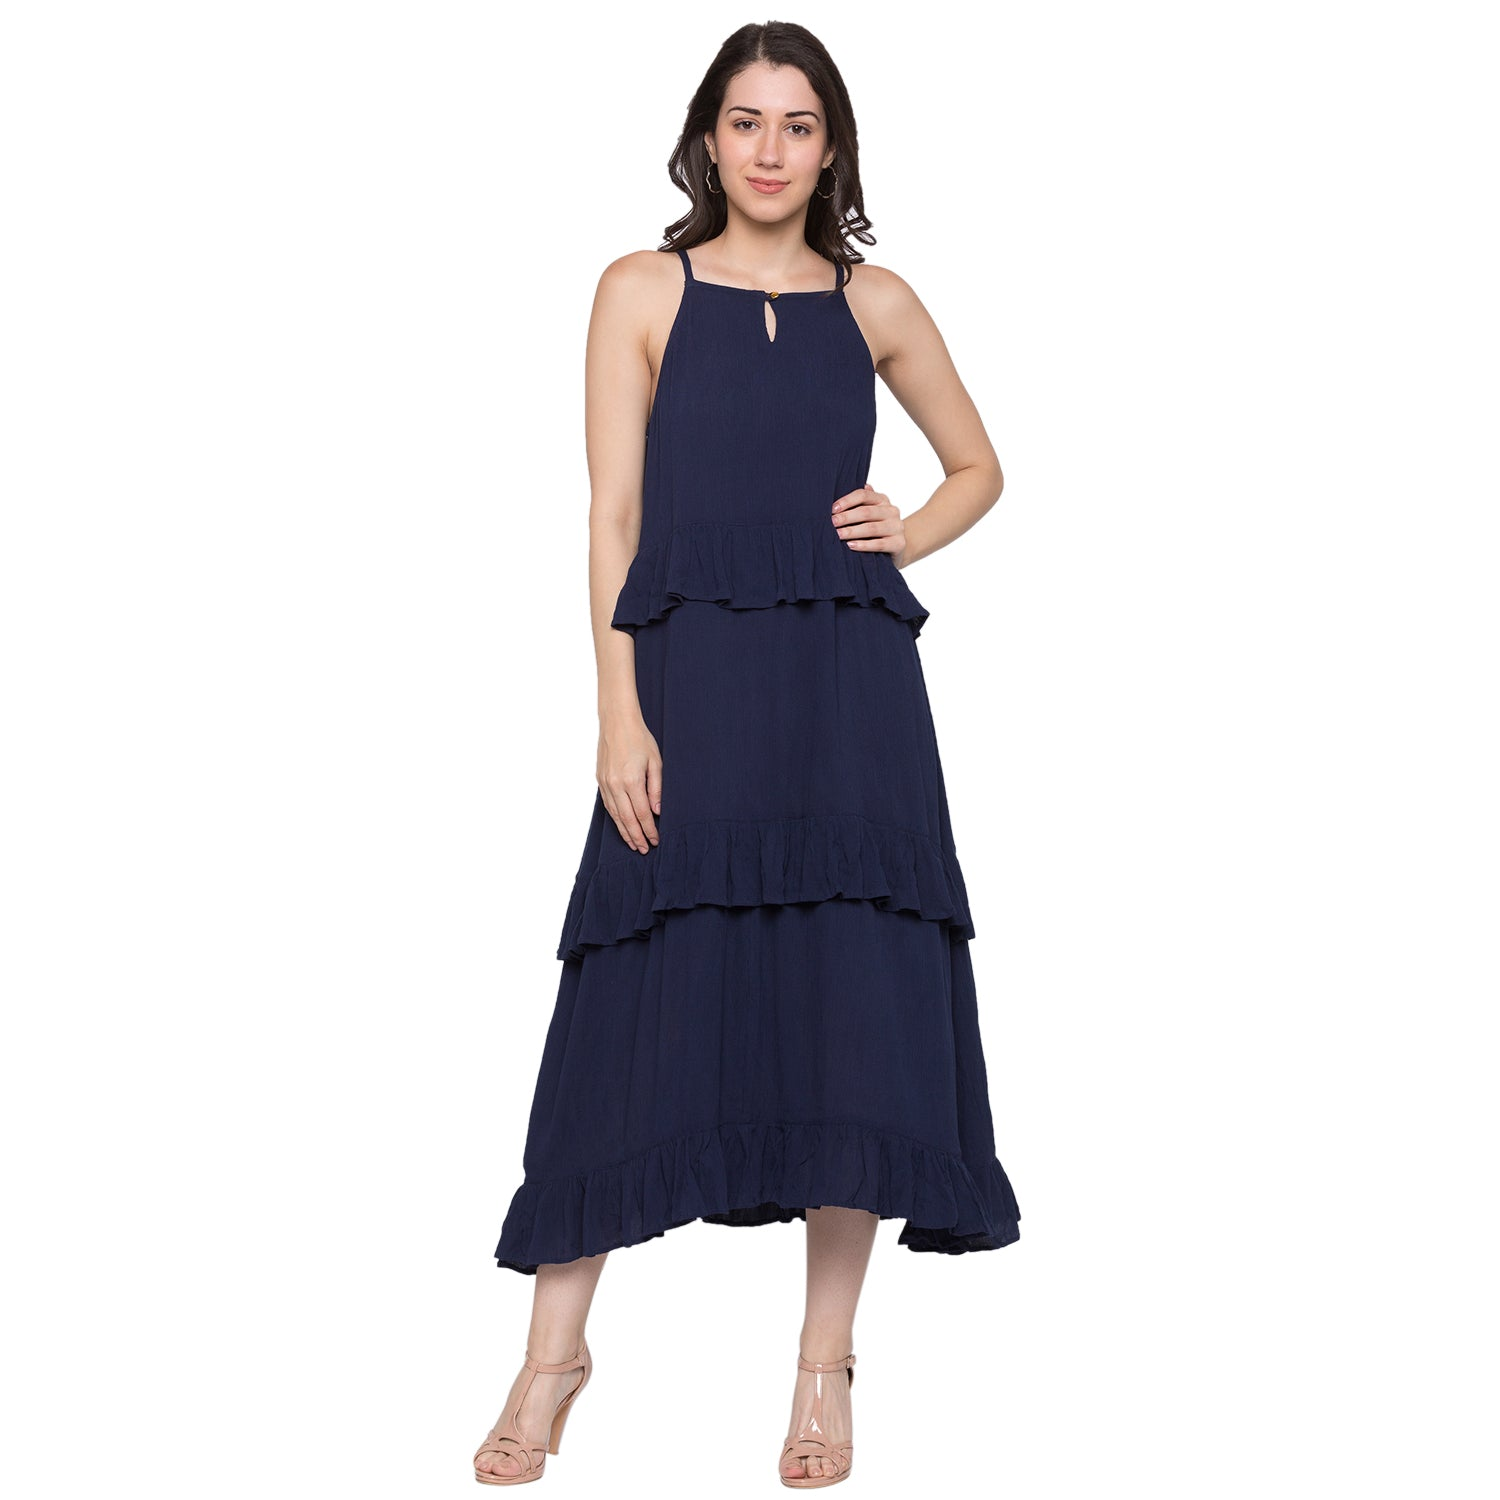 Globus Navy Blue Solid Dress-1